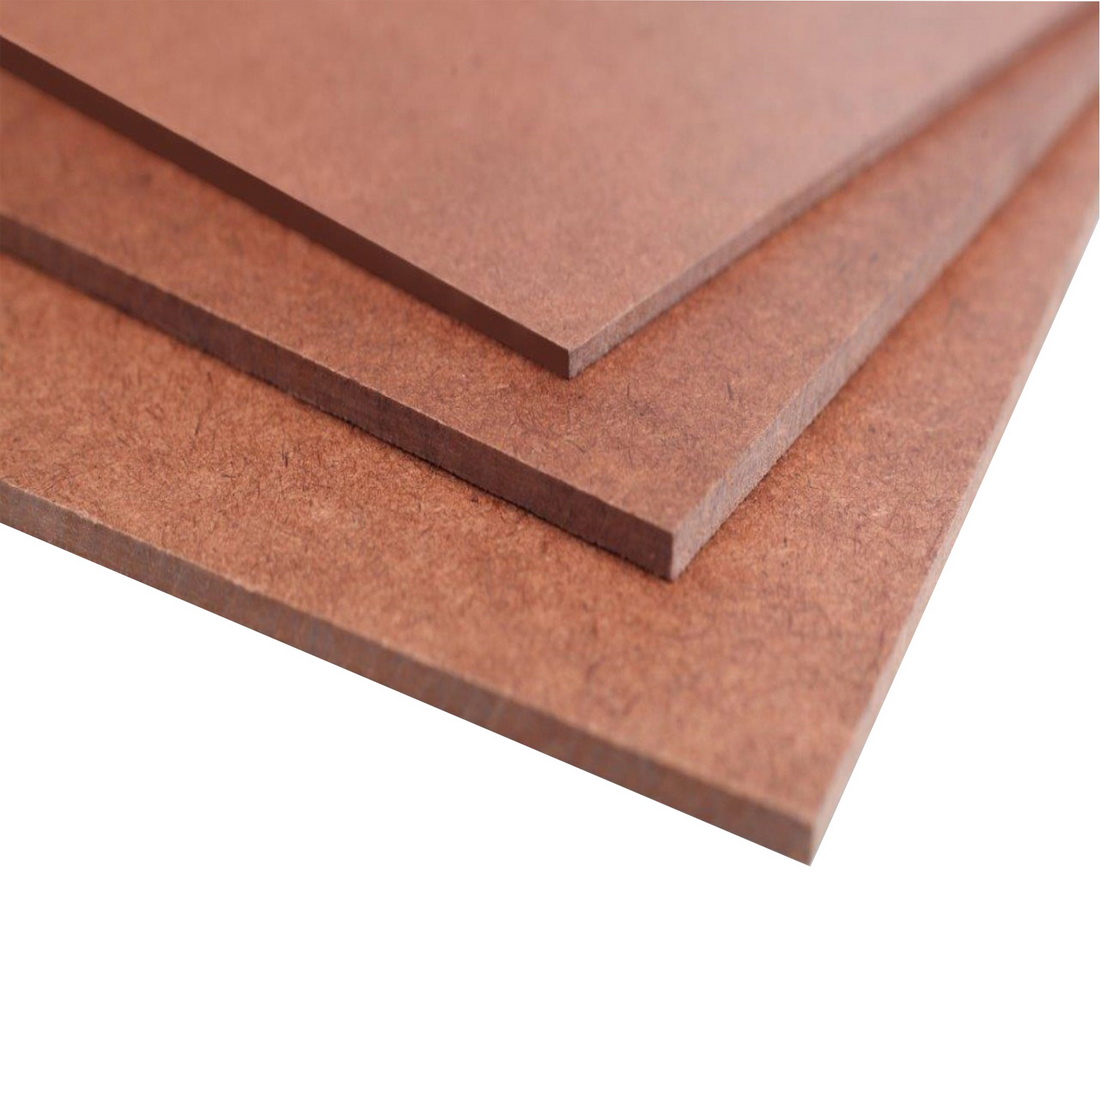 2440x1220x3.2mm Standard Smooth Face 1 Side Wood Fibre Building Board